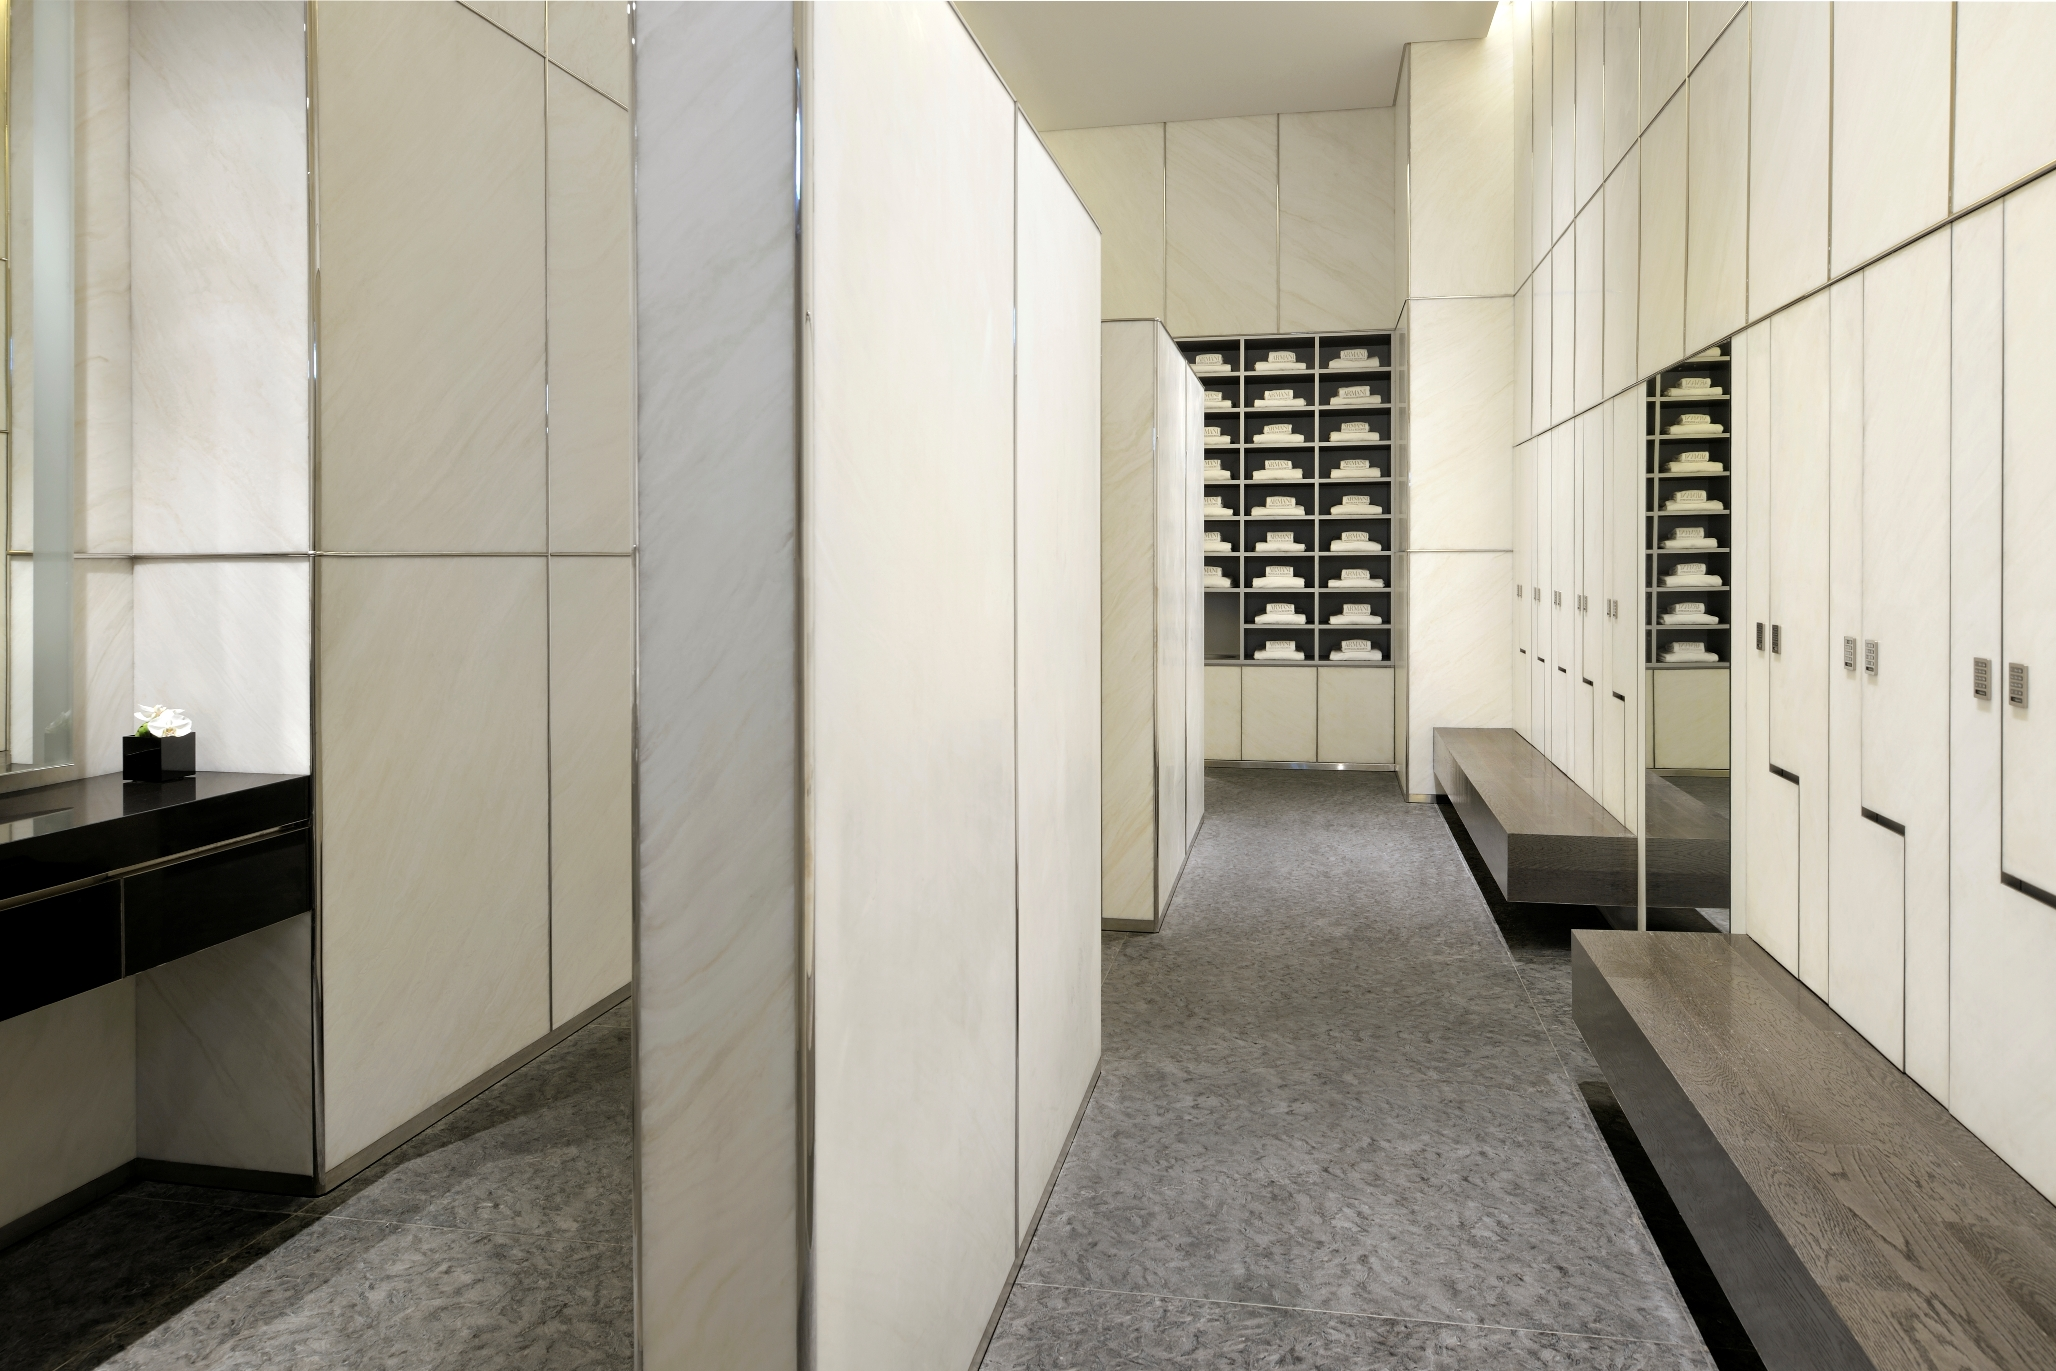 Armani Spa - Changing Room2